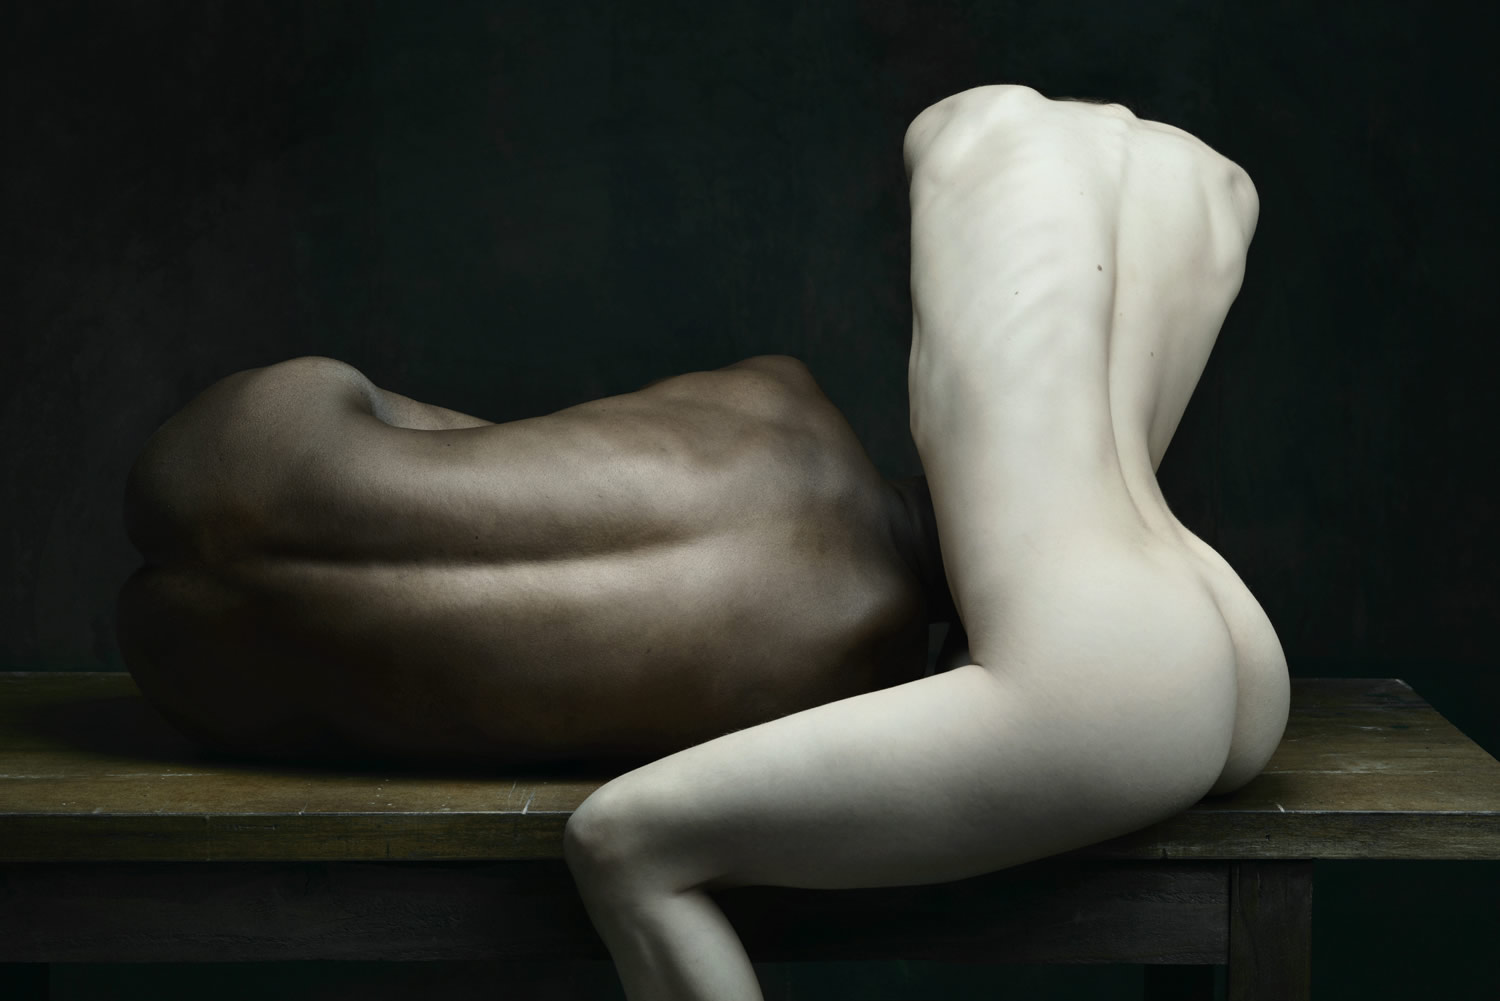 black and white bodies, drifting series, photography by Olivier Valsecchi